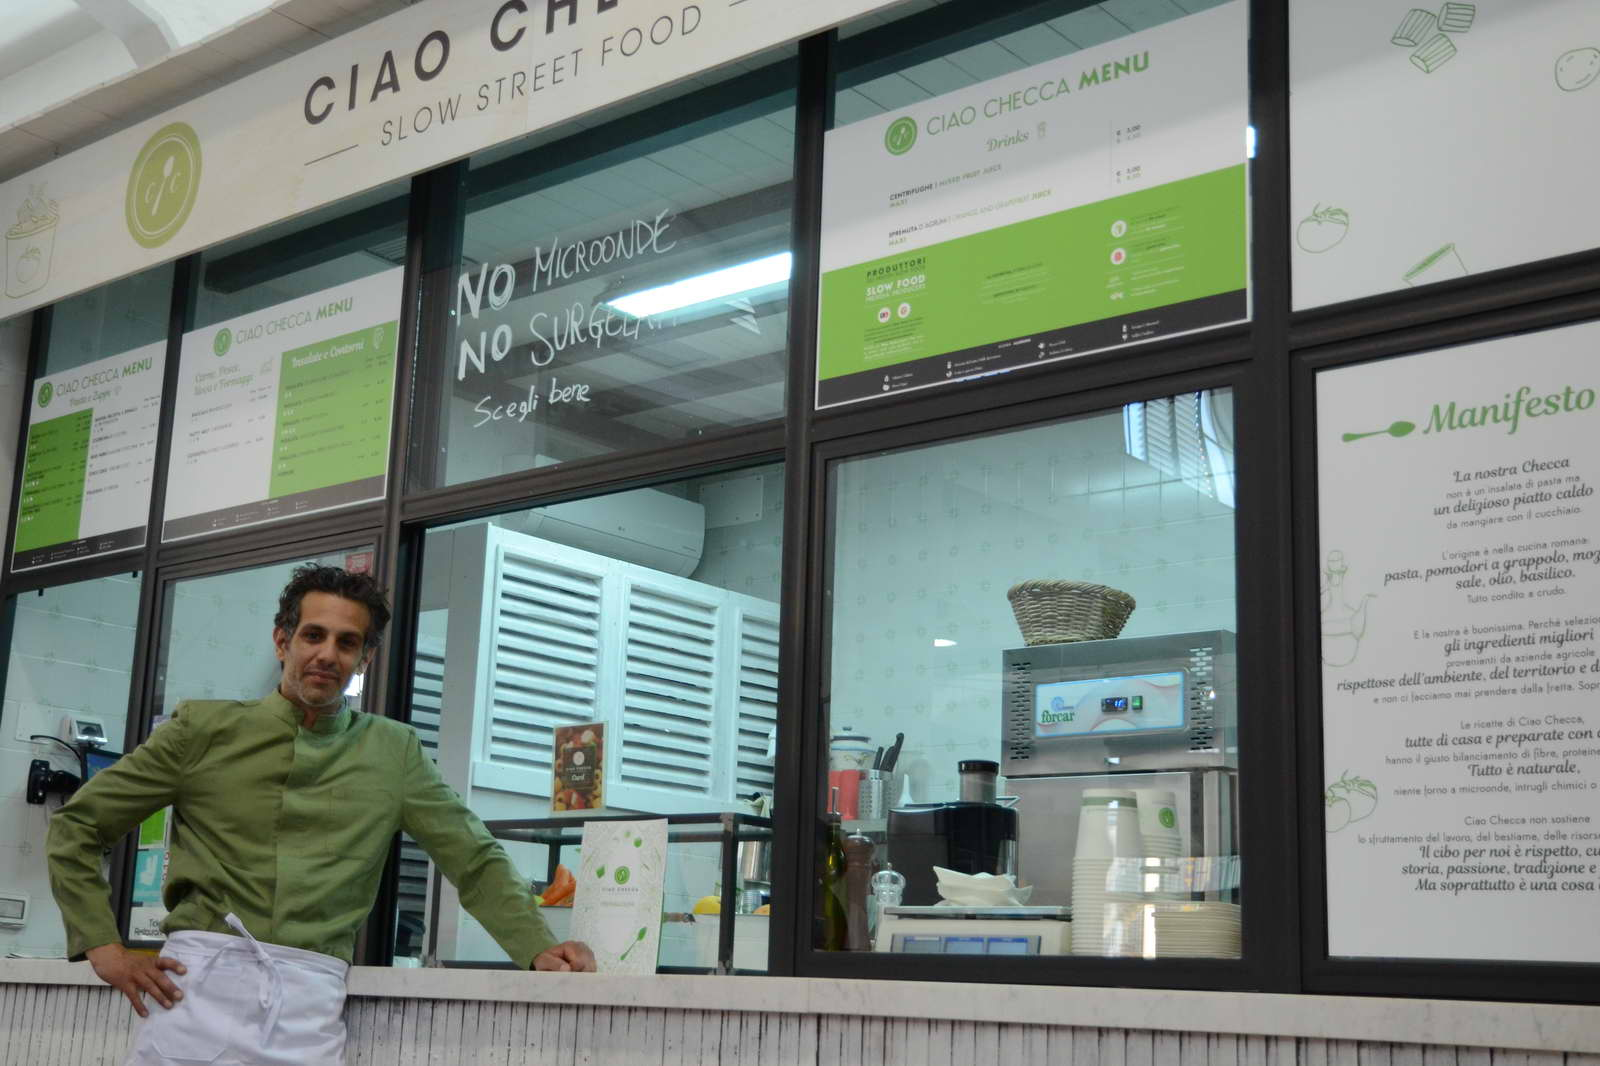 Ciao Checca Slow Street Food